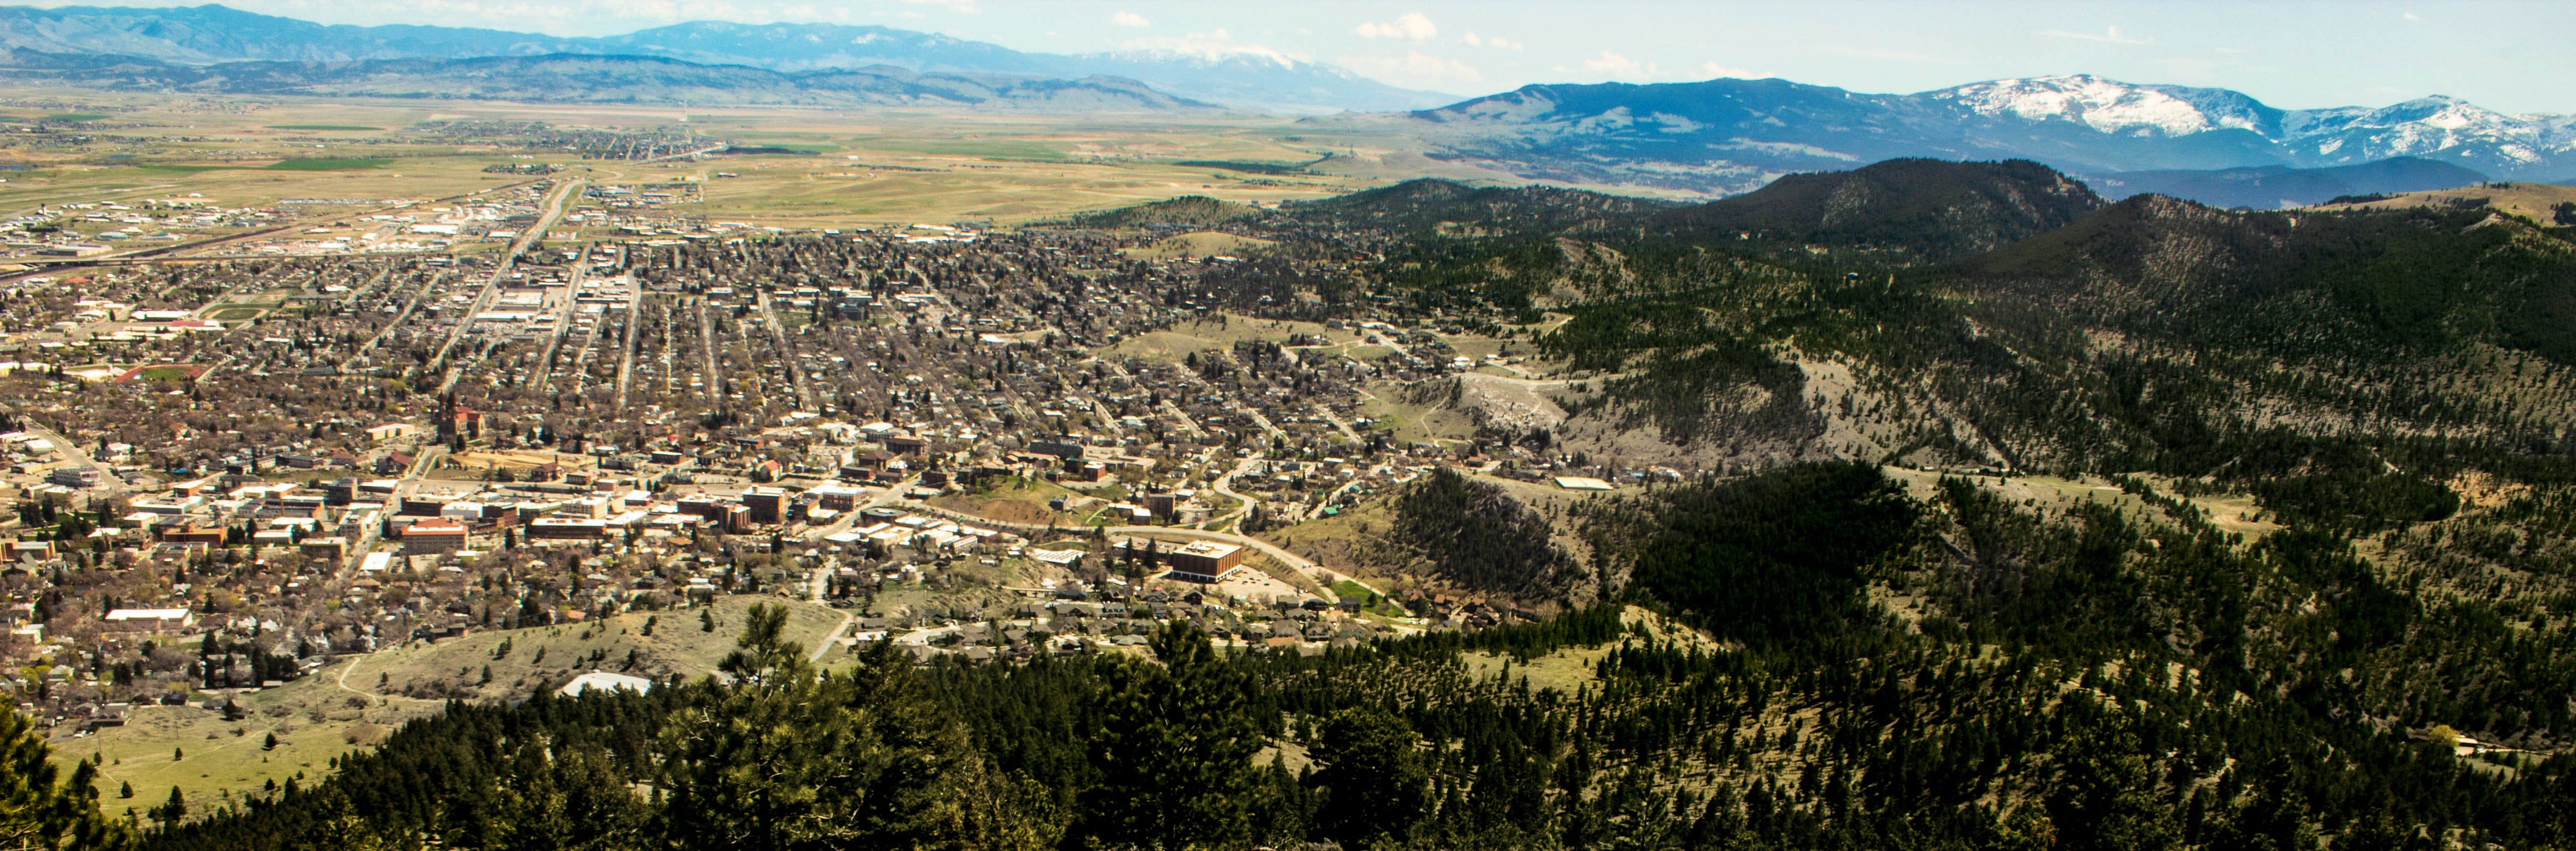 Free stock photo of helena montana, mountains, overlooking city